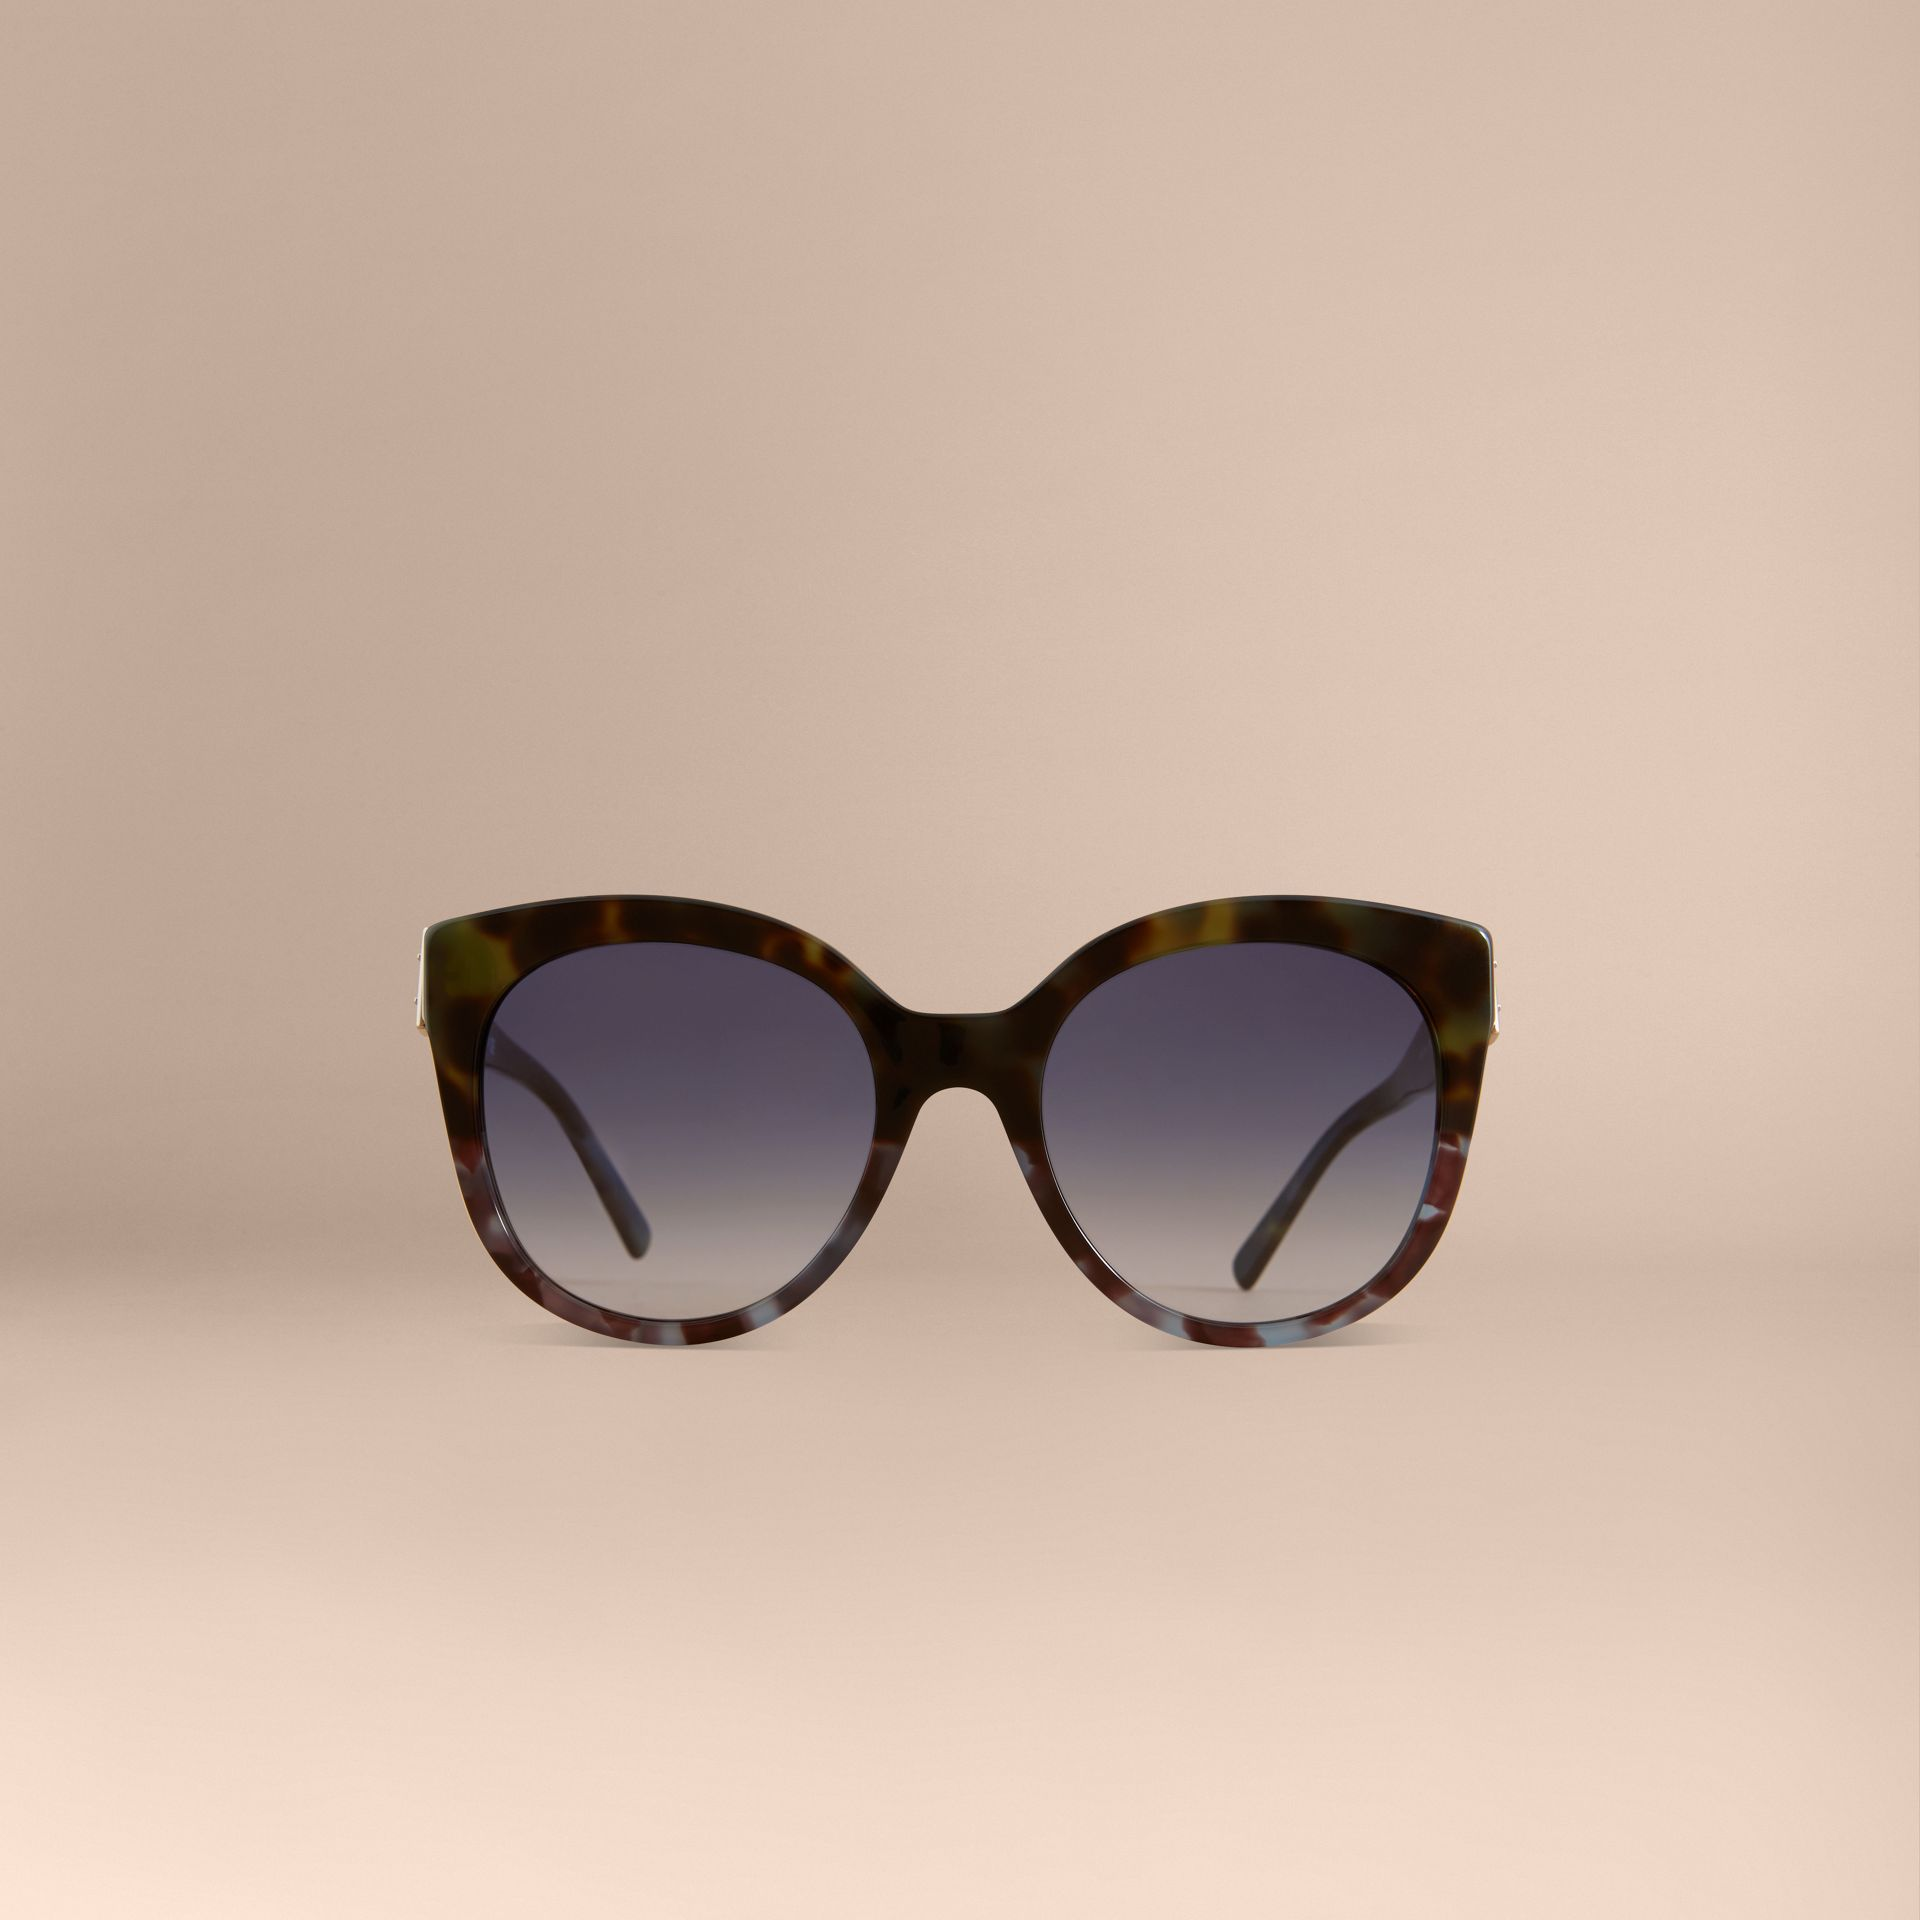 Buckle Detail Cat-eye Frame Sunglasses in Apple Green - Women | Burberry Singapore - gallery image 2